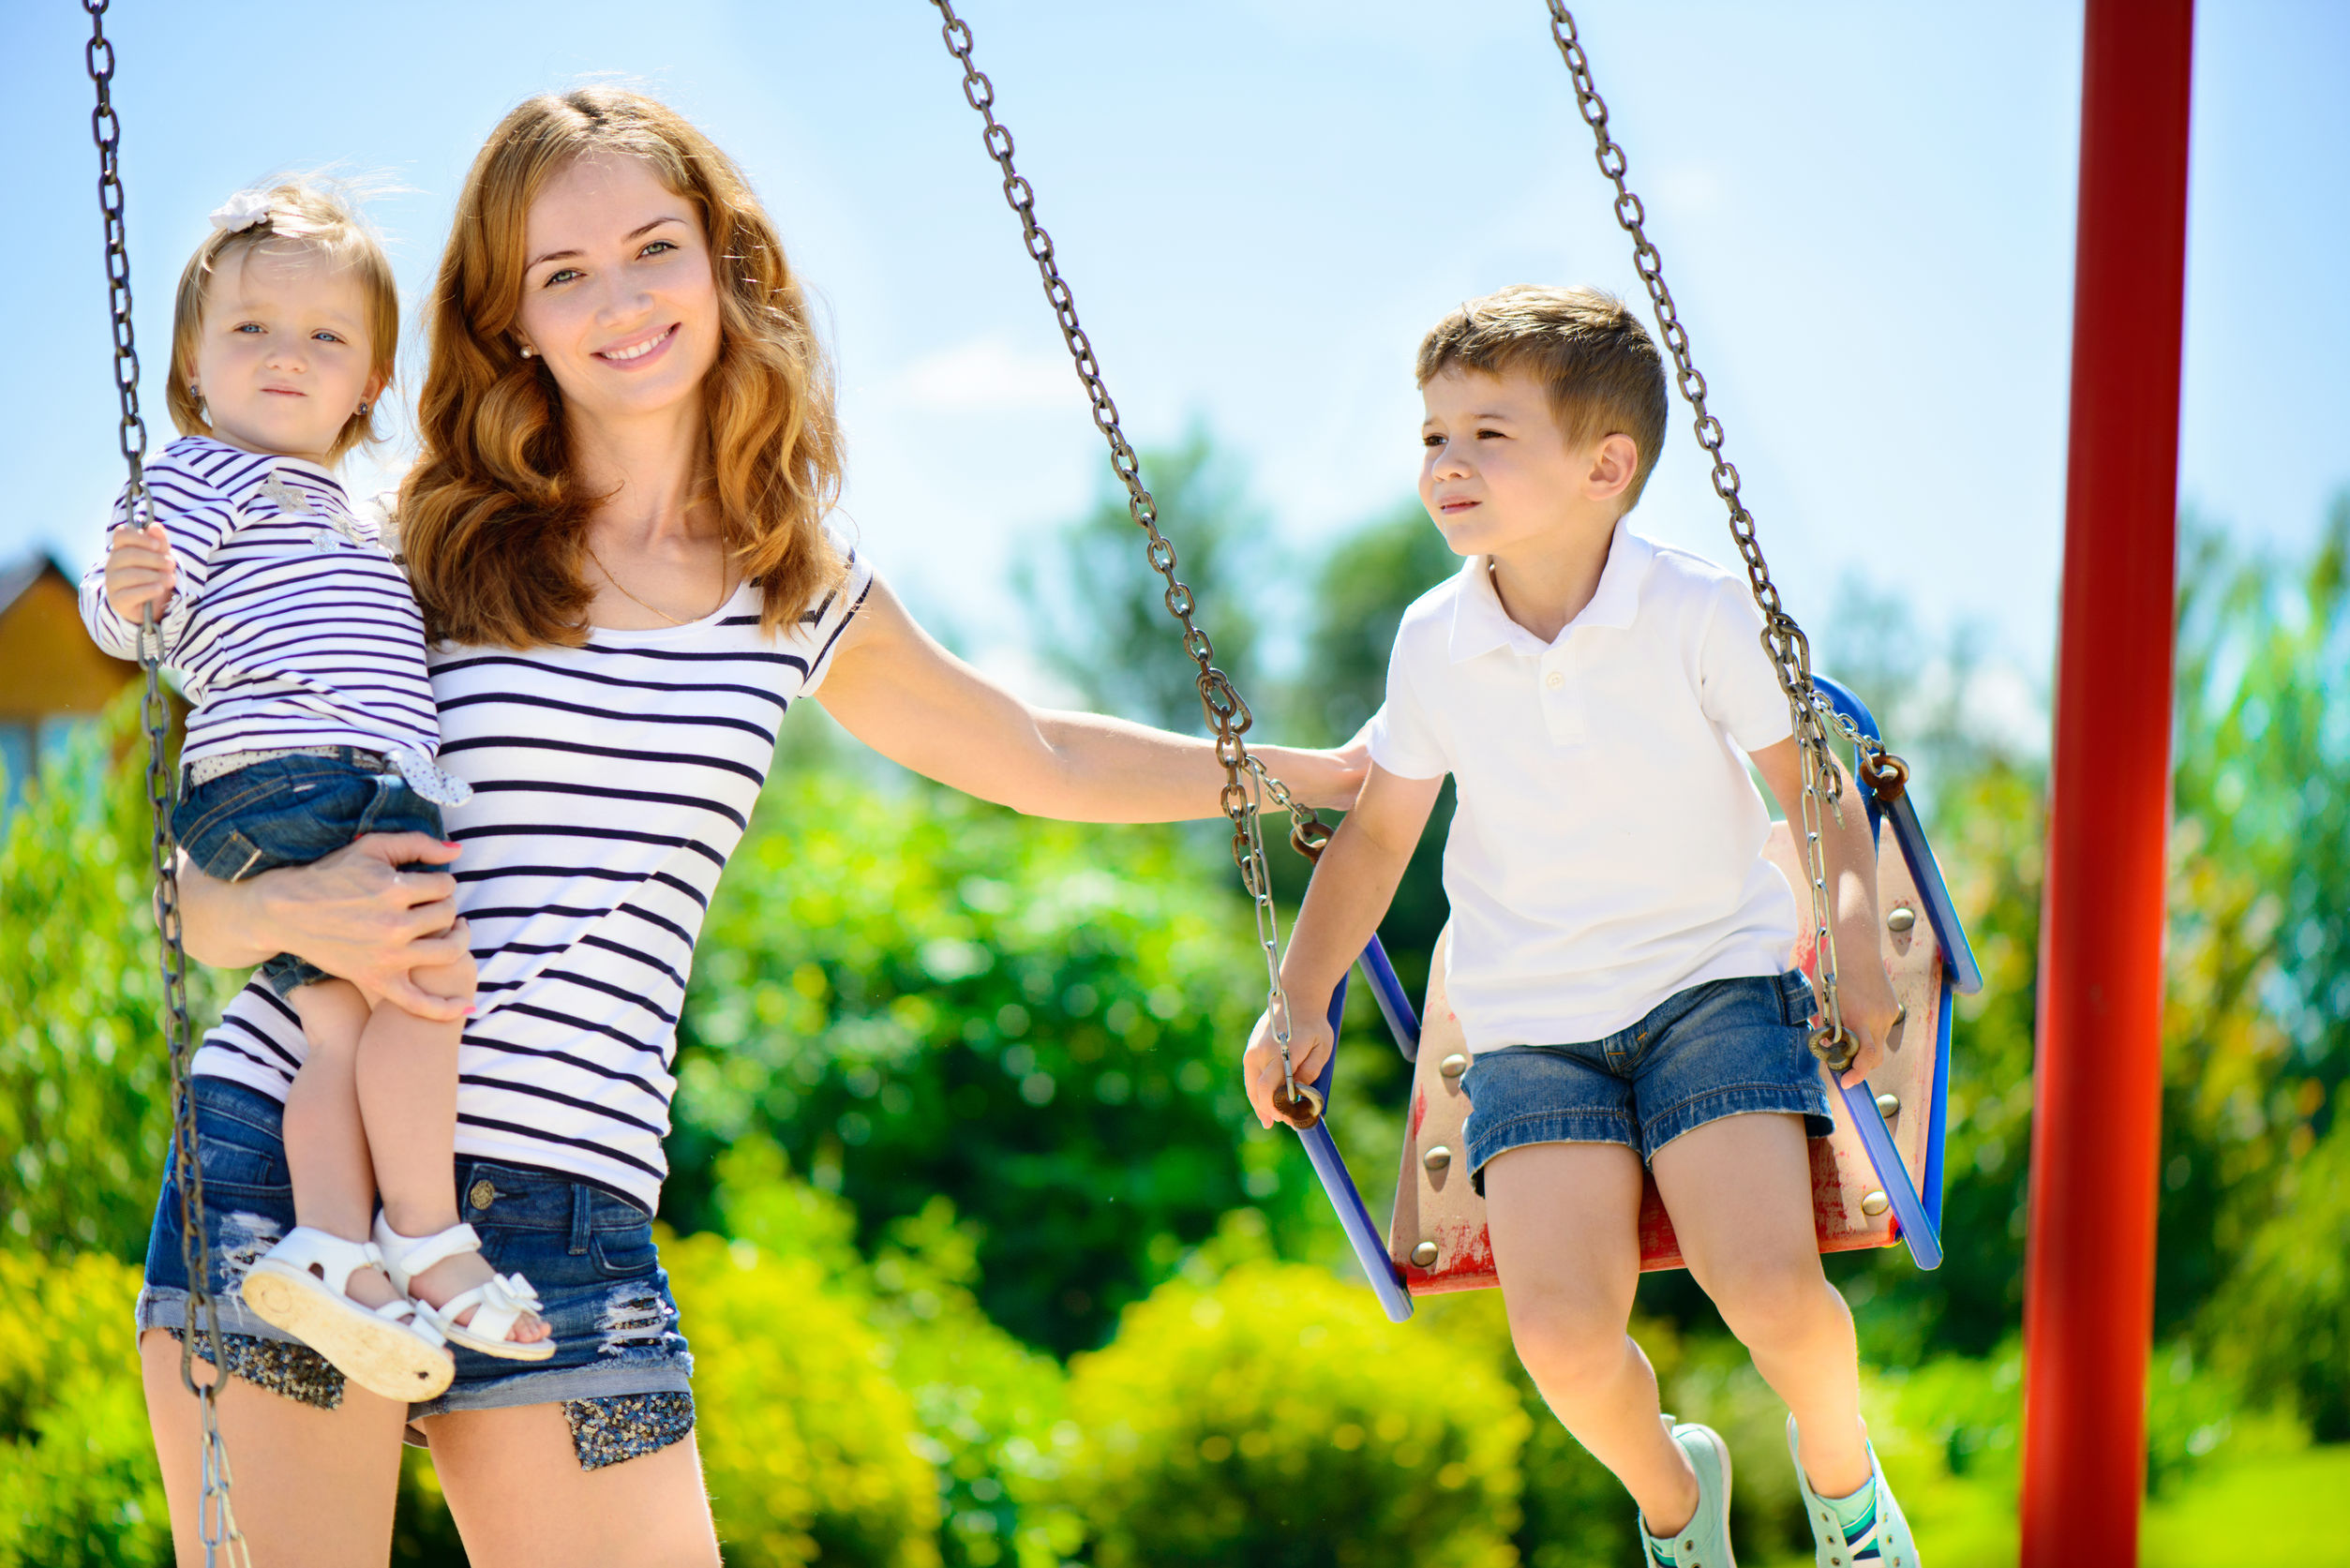 Happy nanny with 2 children at playground swings